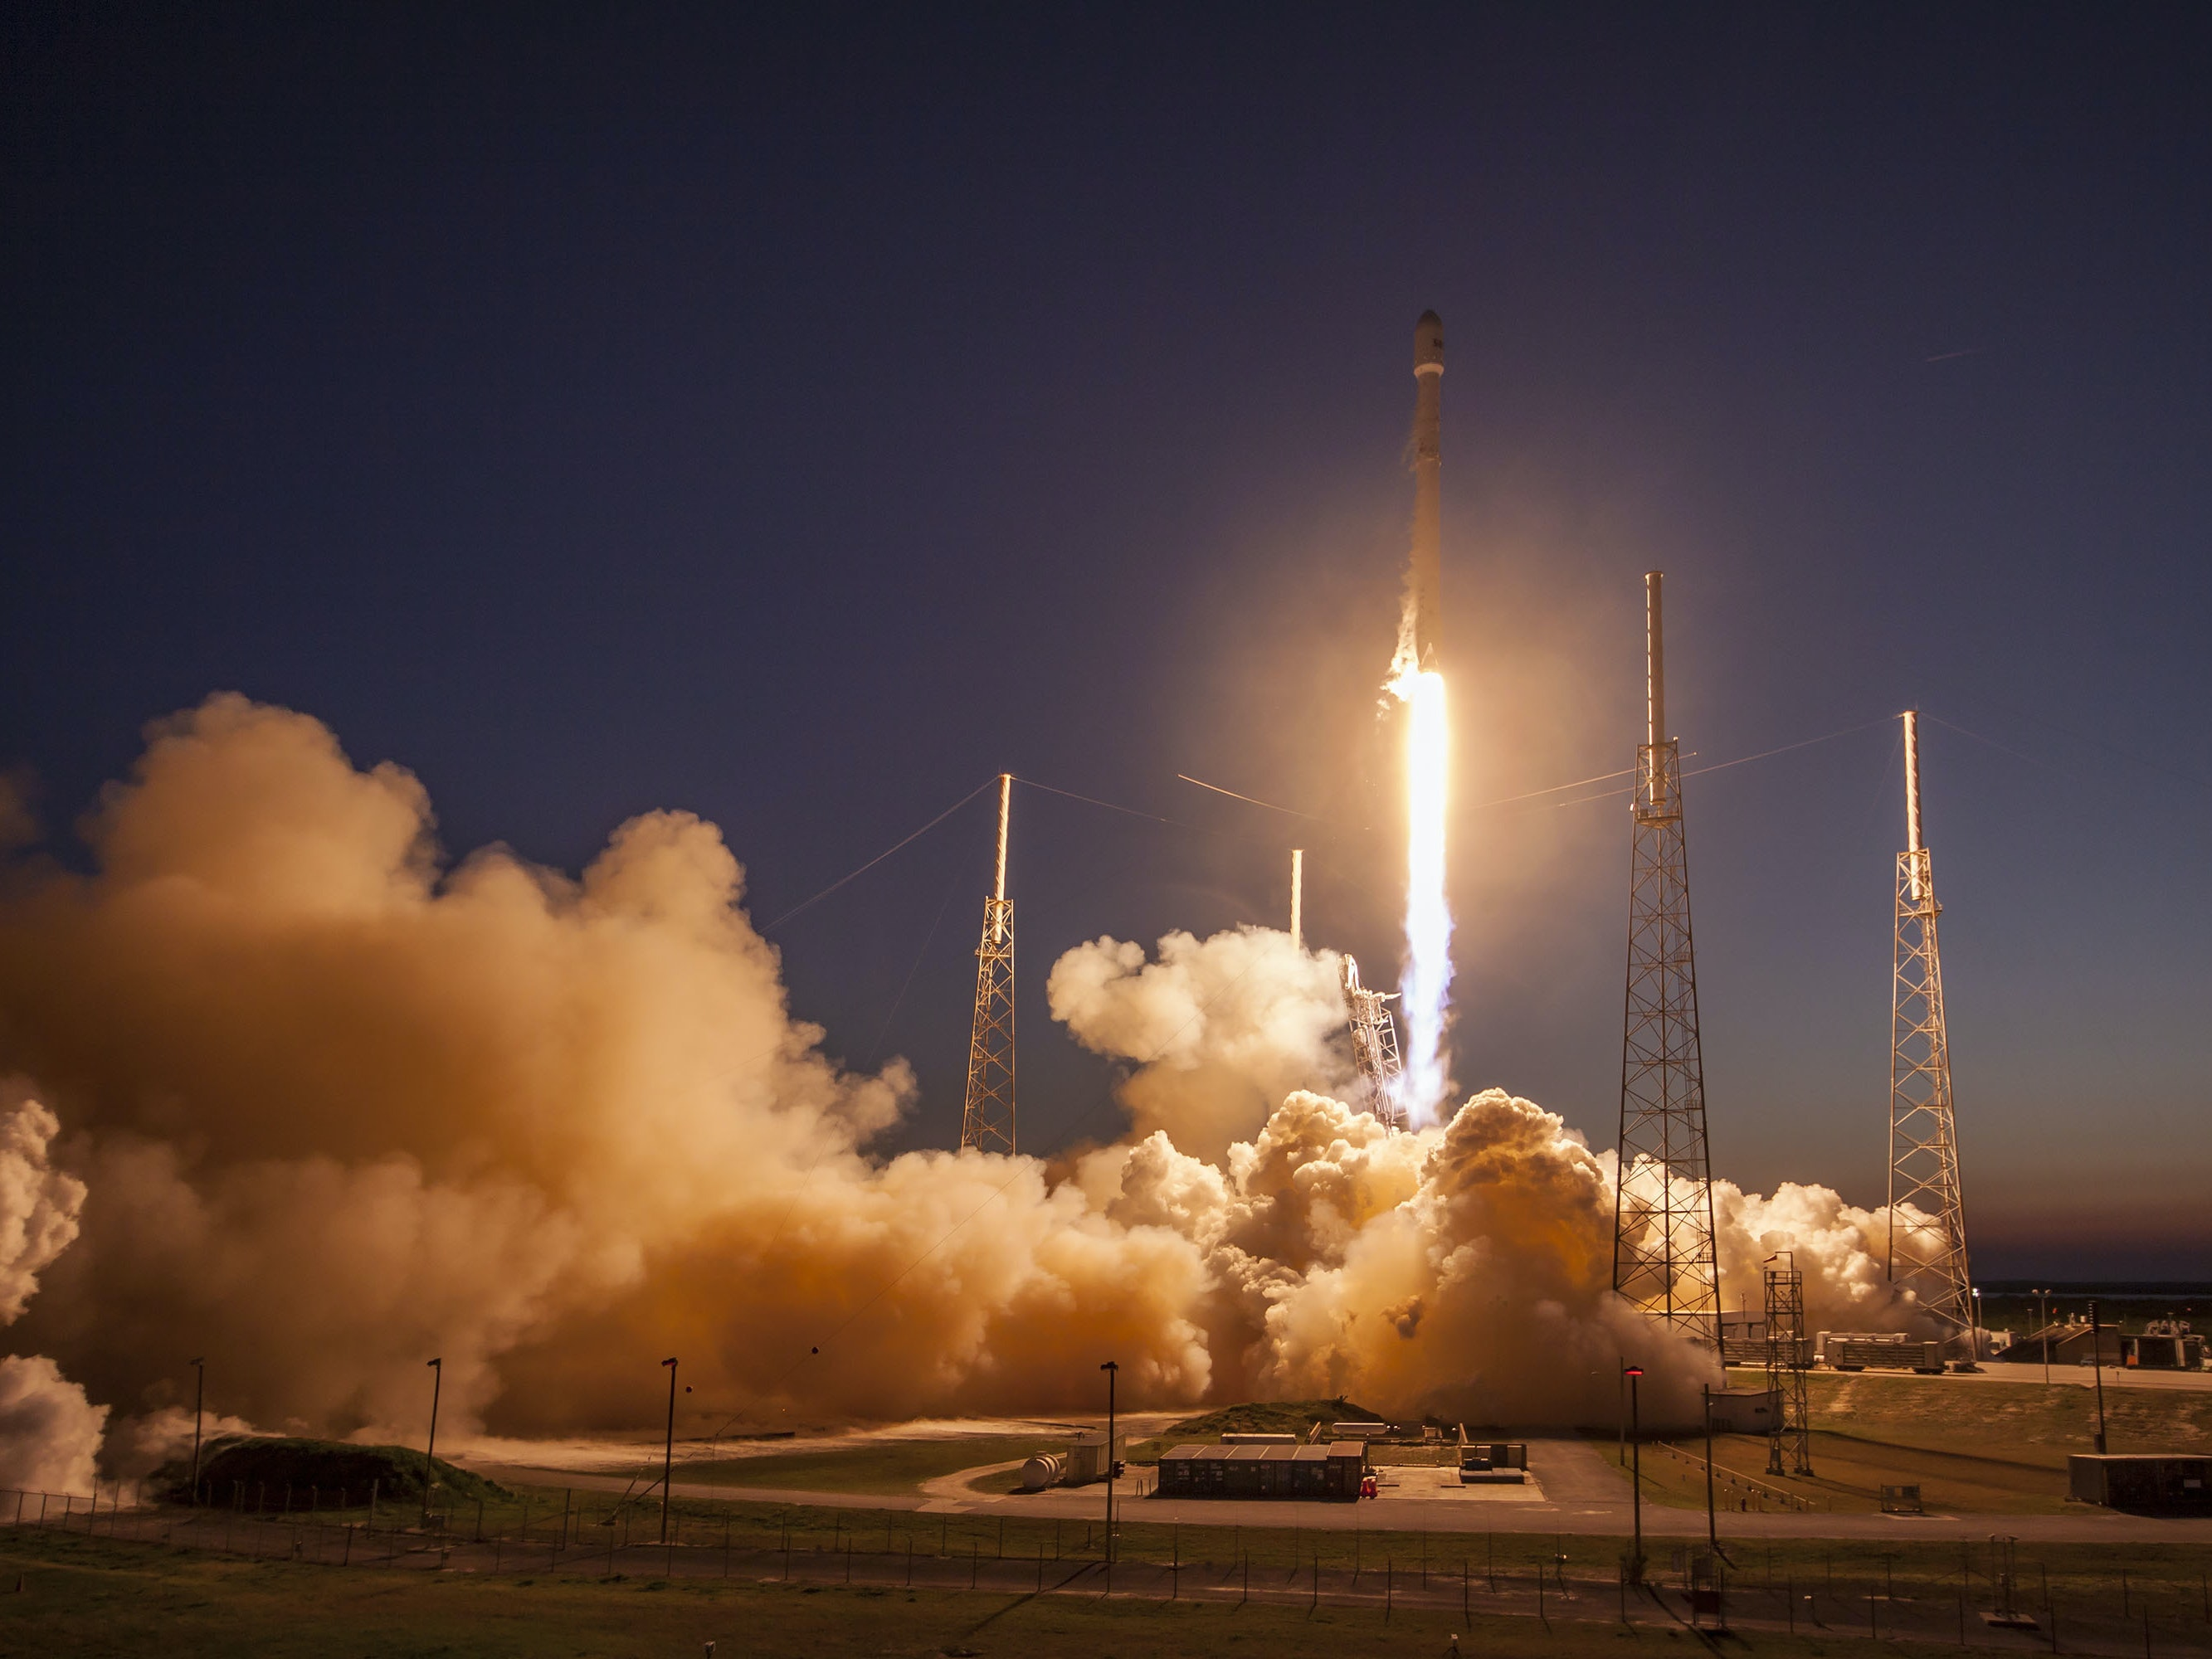 How to Watch SpaceX Rocket Launches